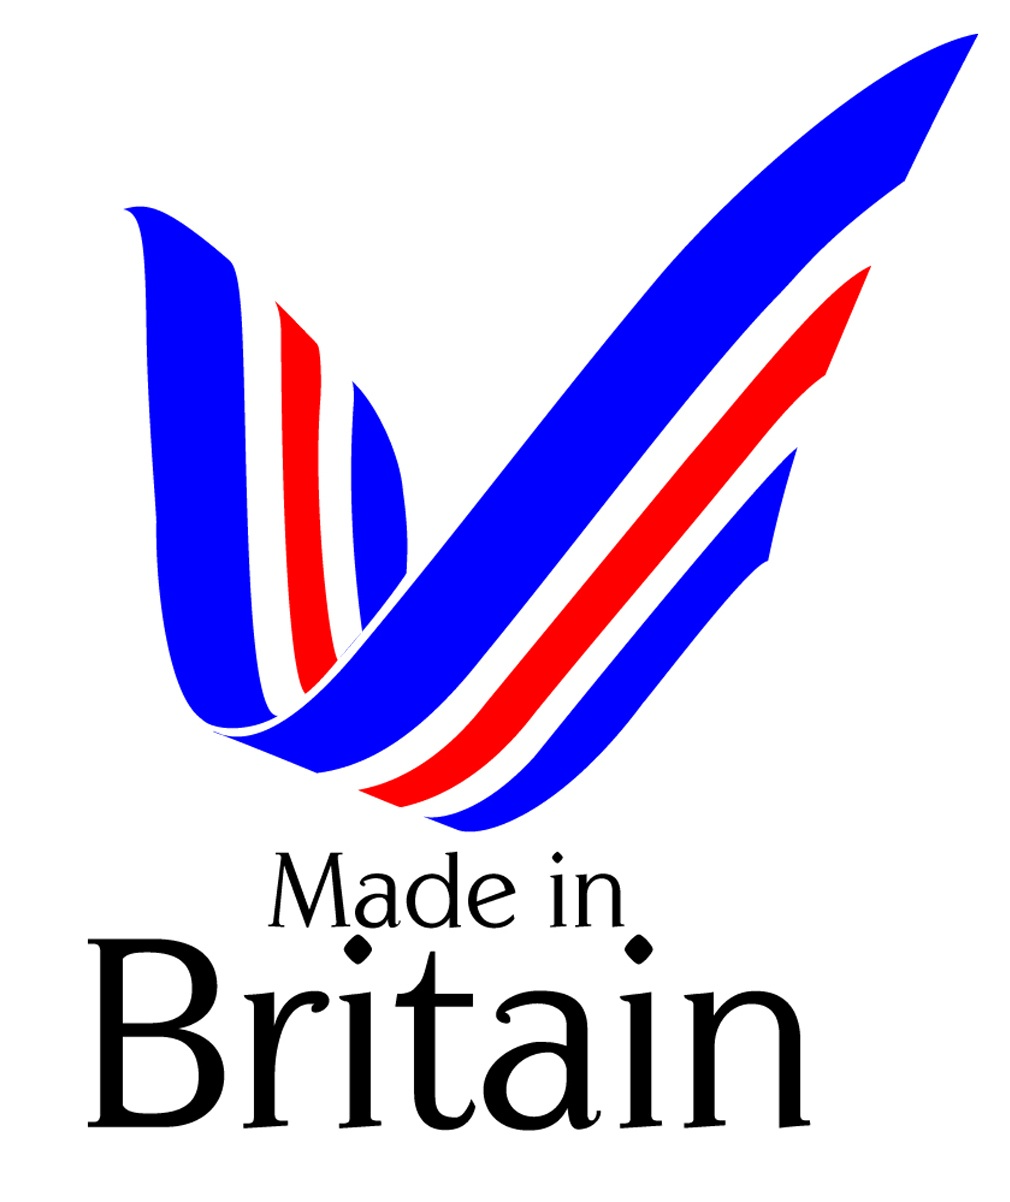 Symbol Mattress Company Best of British: Made in Britain window displays proven to drive ...